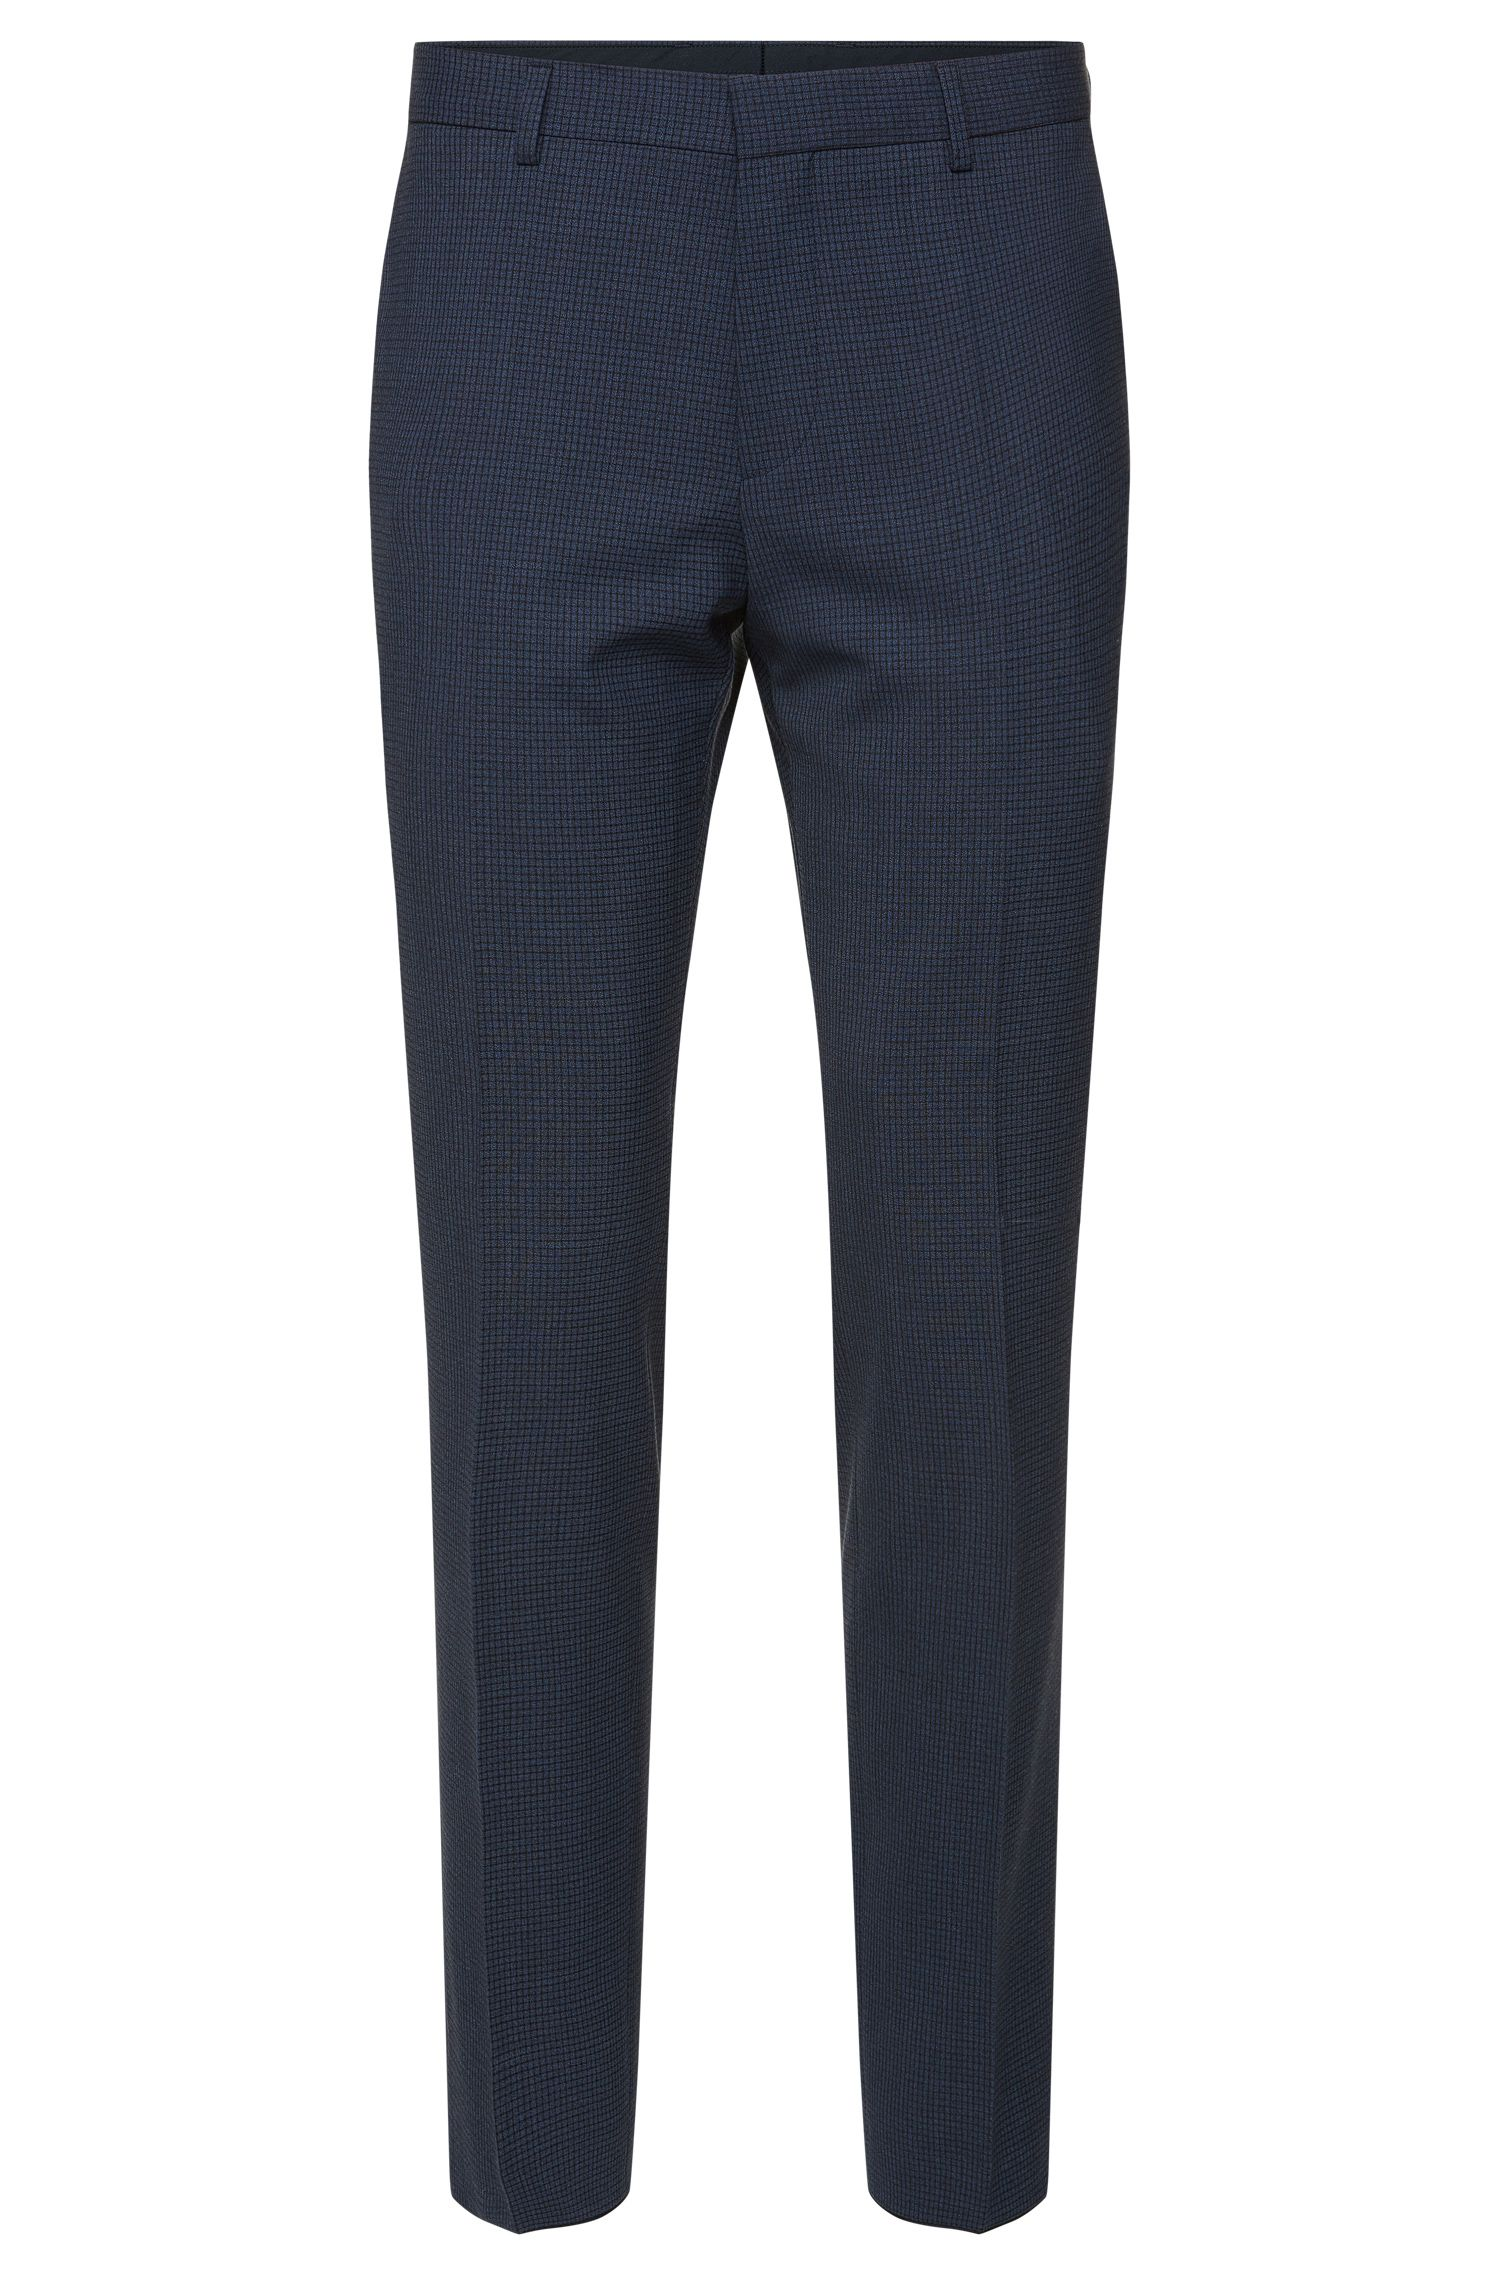 'Genesis' | Slim Fit, Stretch Wool Blend Check Dress Pants